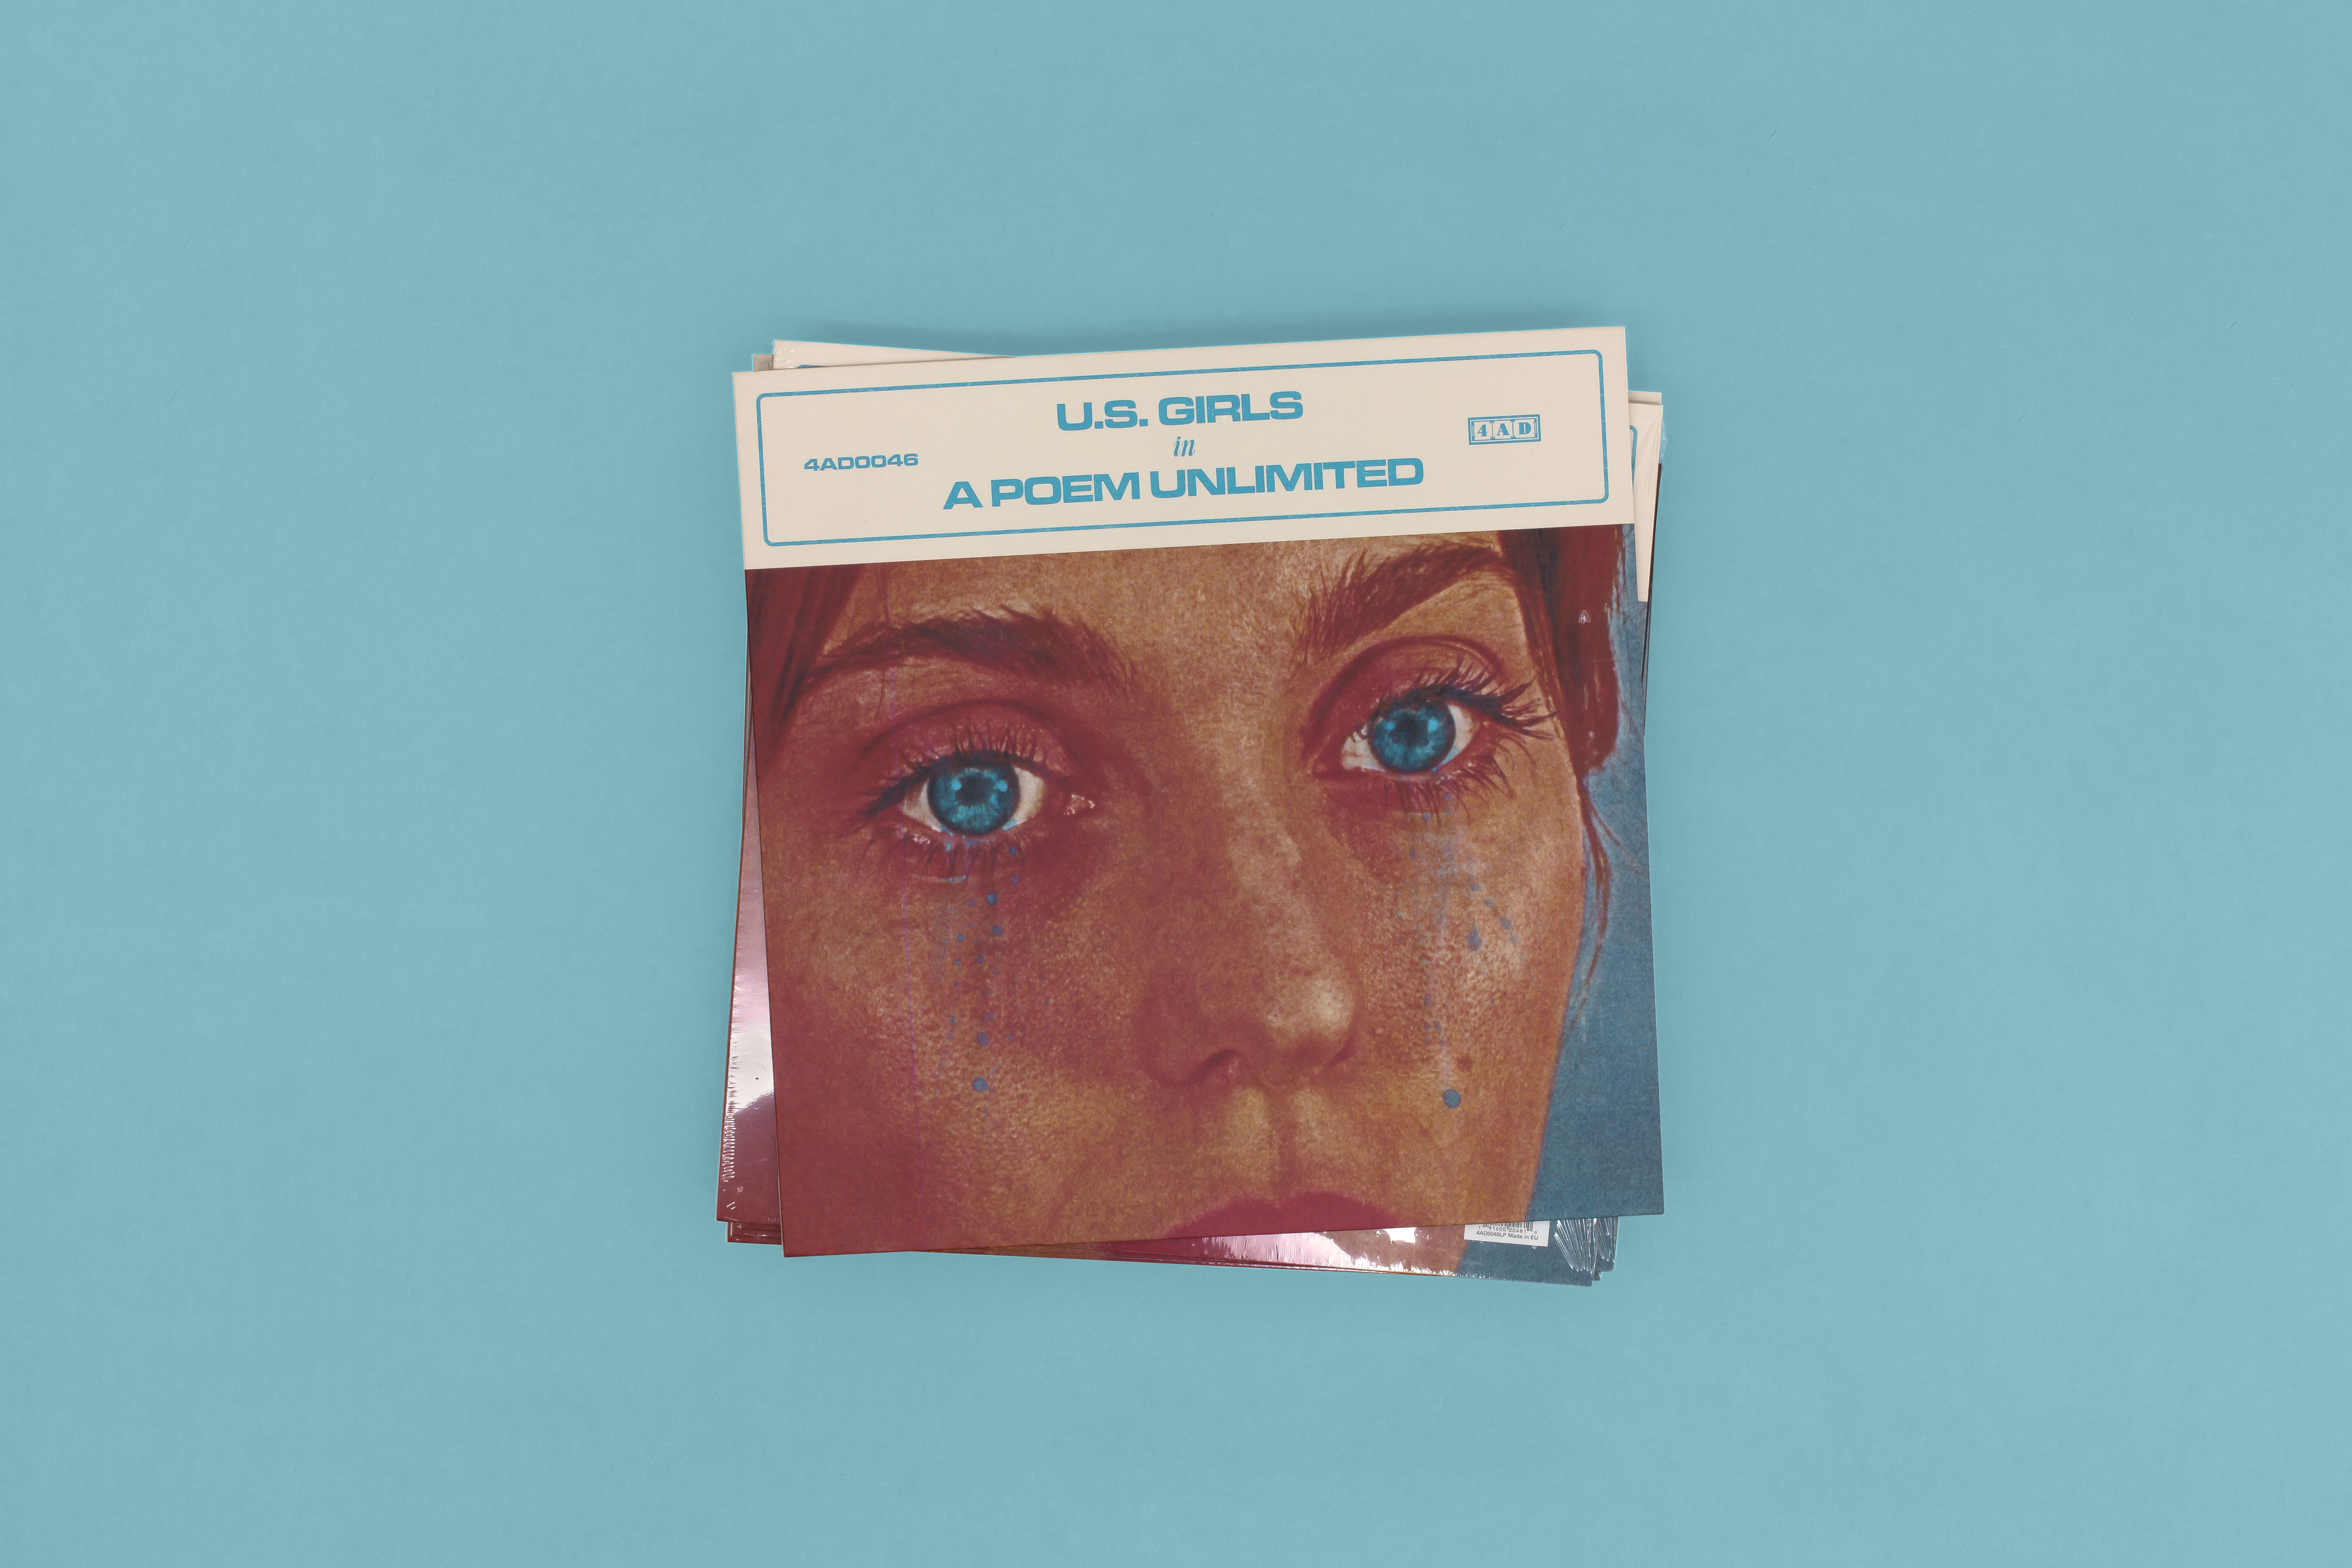 U.S. Girls - 'In a Poem Unlimited' Is Out Today